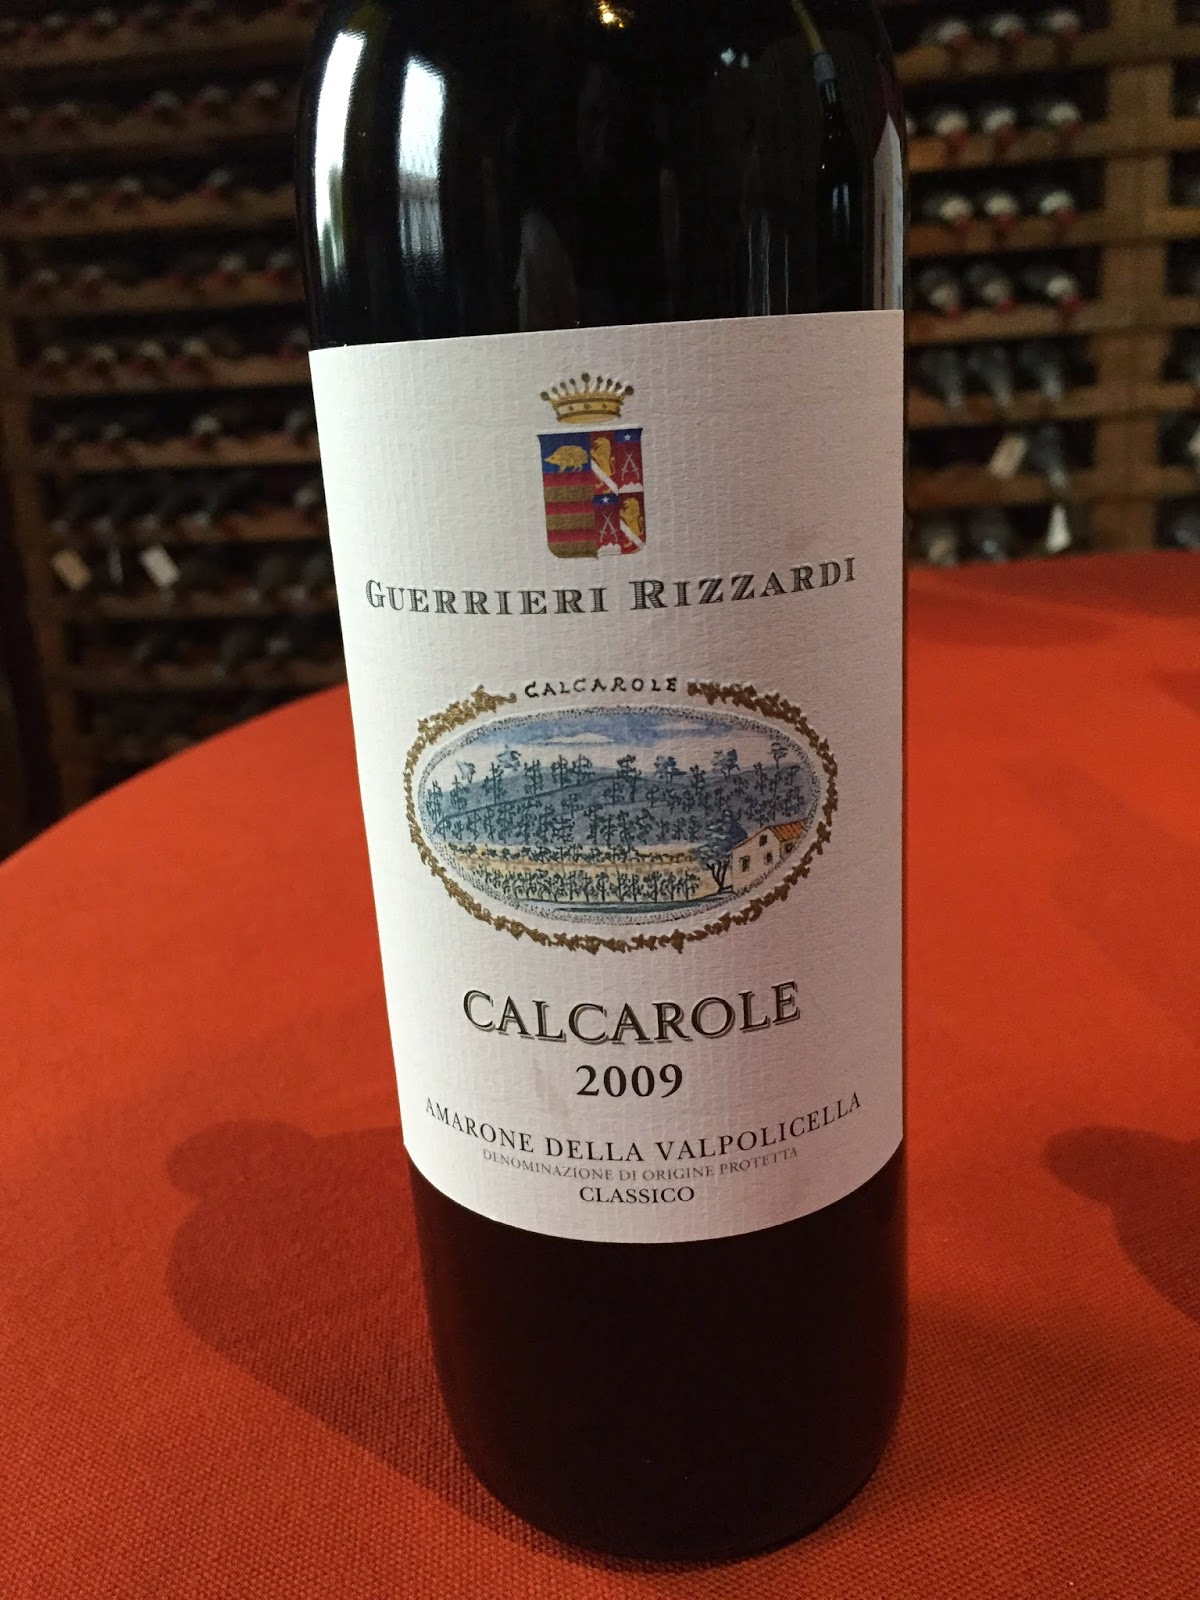 2009 Guerrieri Rizzardi Calcarole Amarone